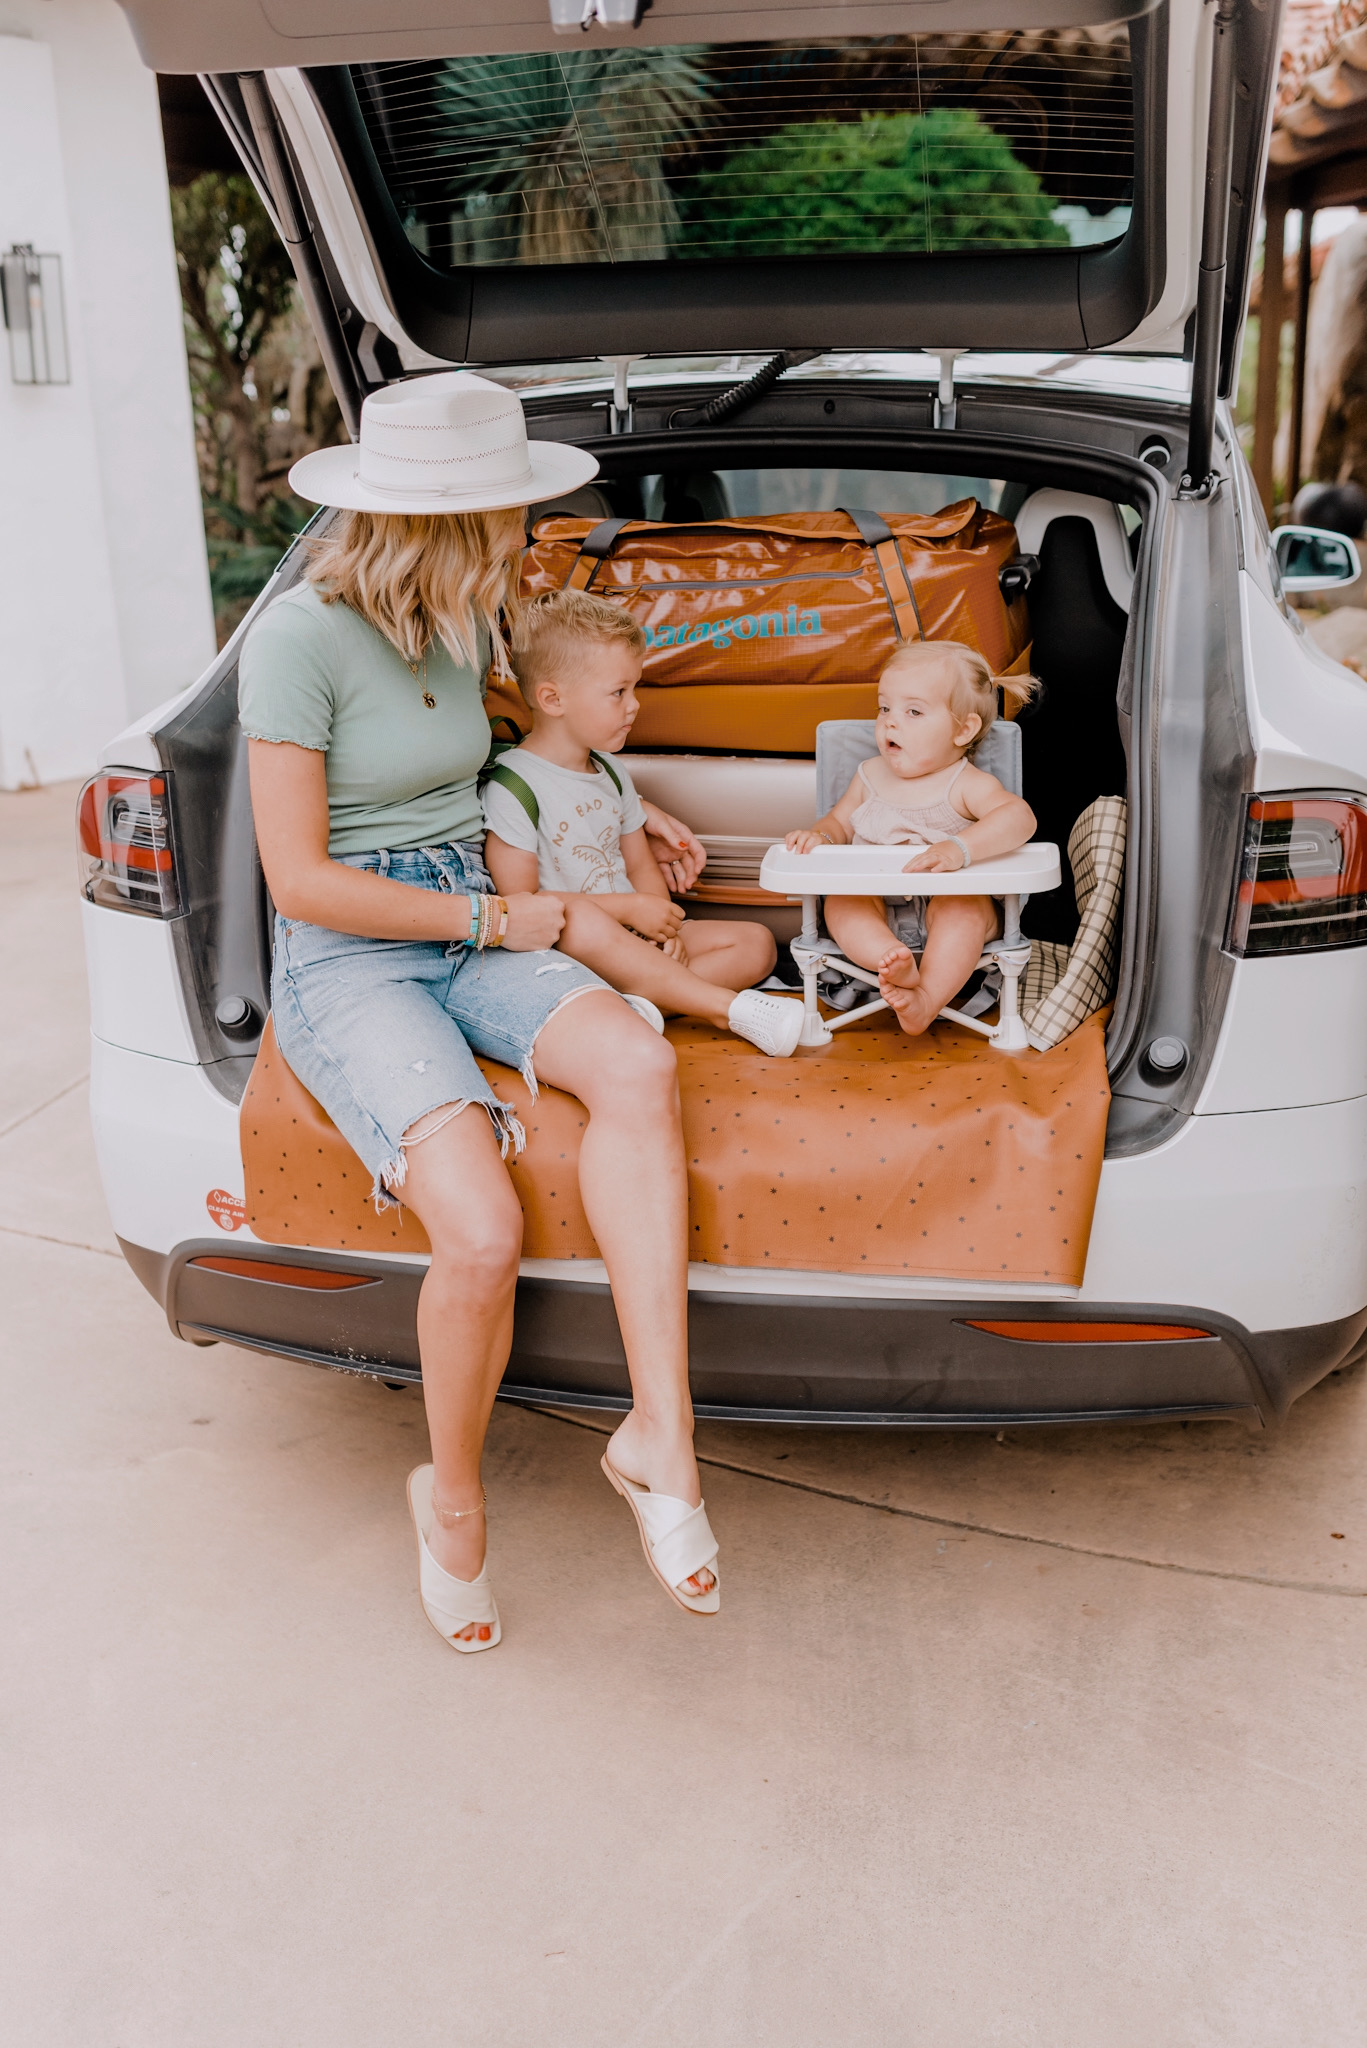 Family Travel by popular San Diego motherhood blog, Navy Grace: image of a mom sitting on a Gathre mat in the back of her car while holding on to her young son who is wearing a Nordstrom 'Mini Kånken' Water Resistant Backpack FJÄLLRÄVEN and standing next to a Nordstrom 40-Liter Rolling Duffle Bag PATAGONIA and his baby sister who is sitting in a Amazon Summer Infant Summer Pop 'n Sit Portable Booster Chair.